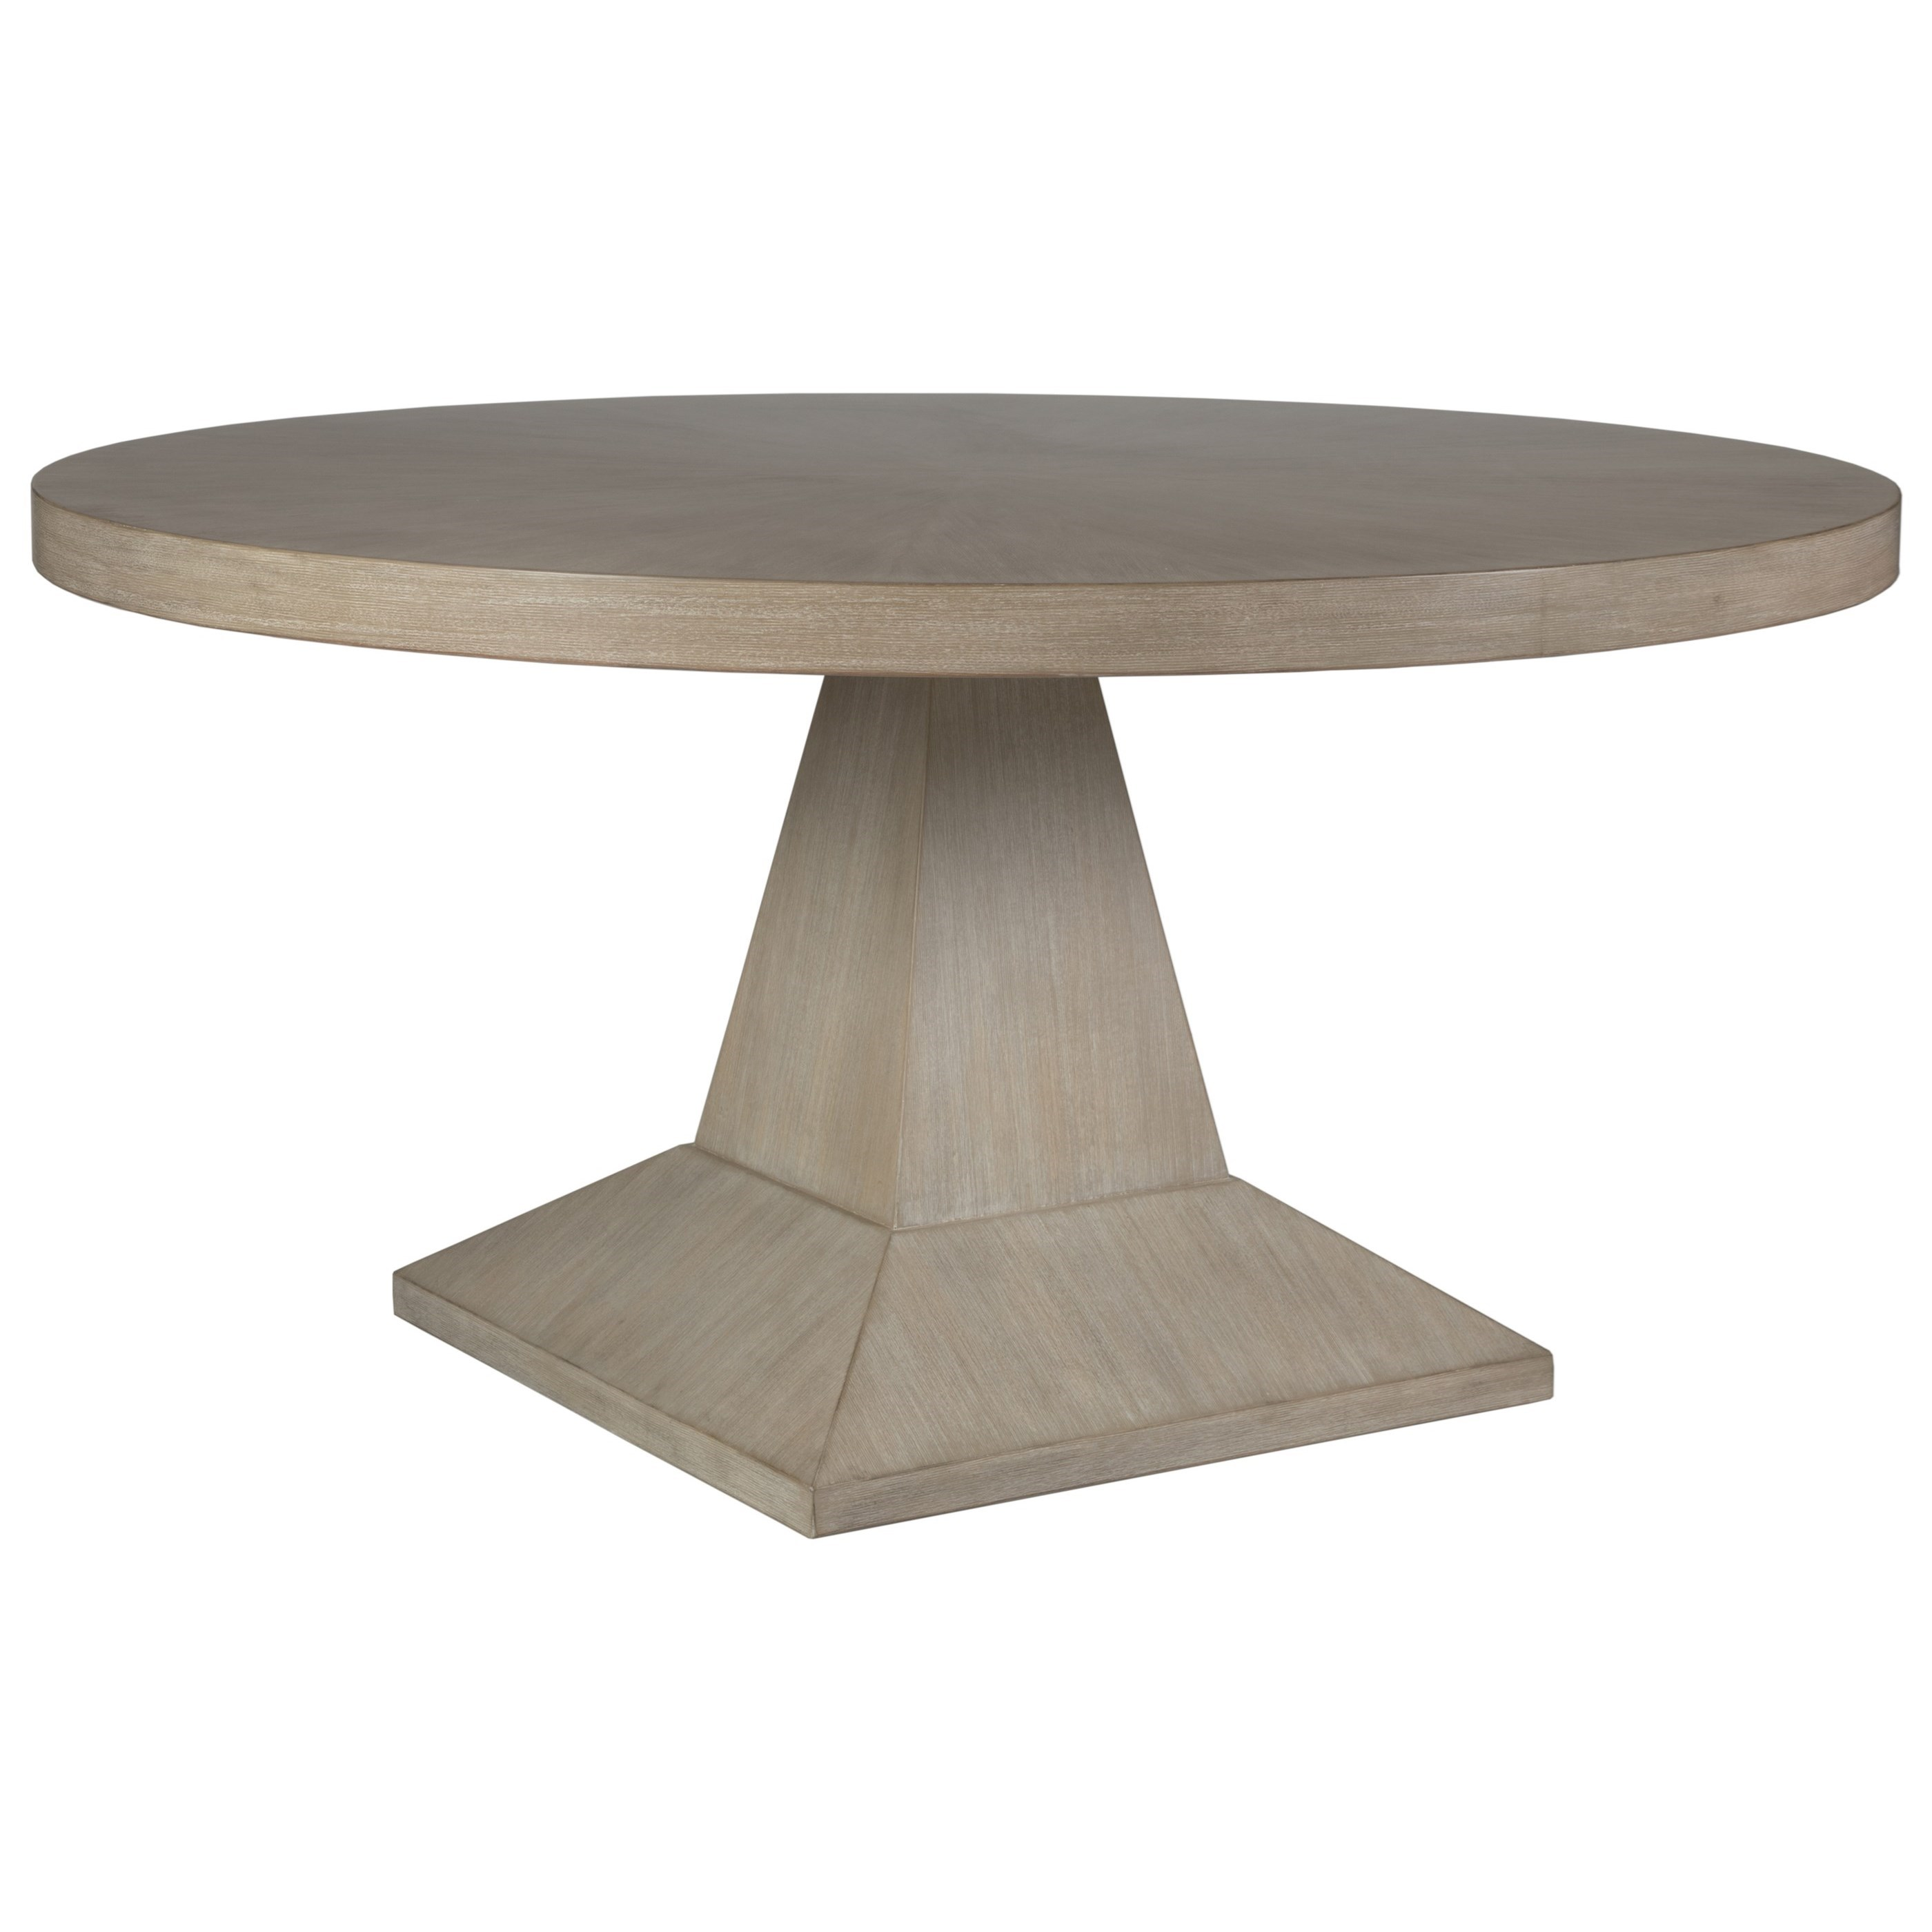 Chronicle Round Dining Table